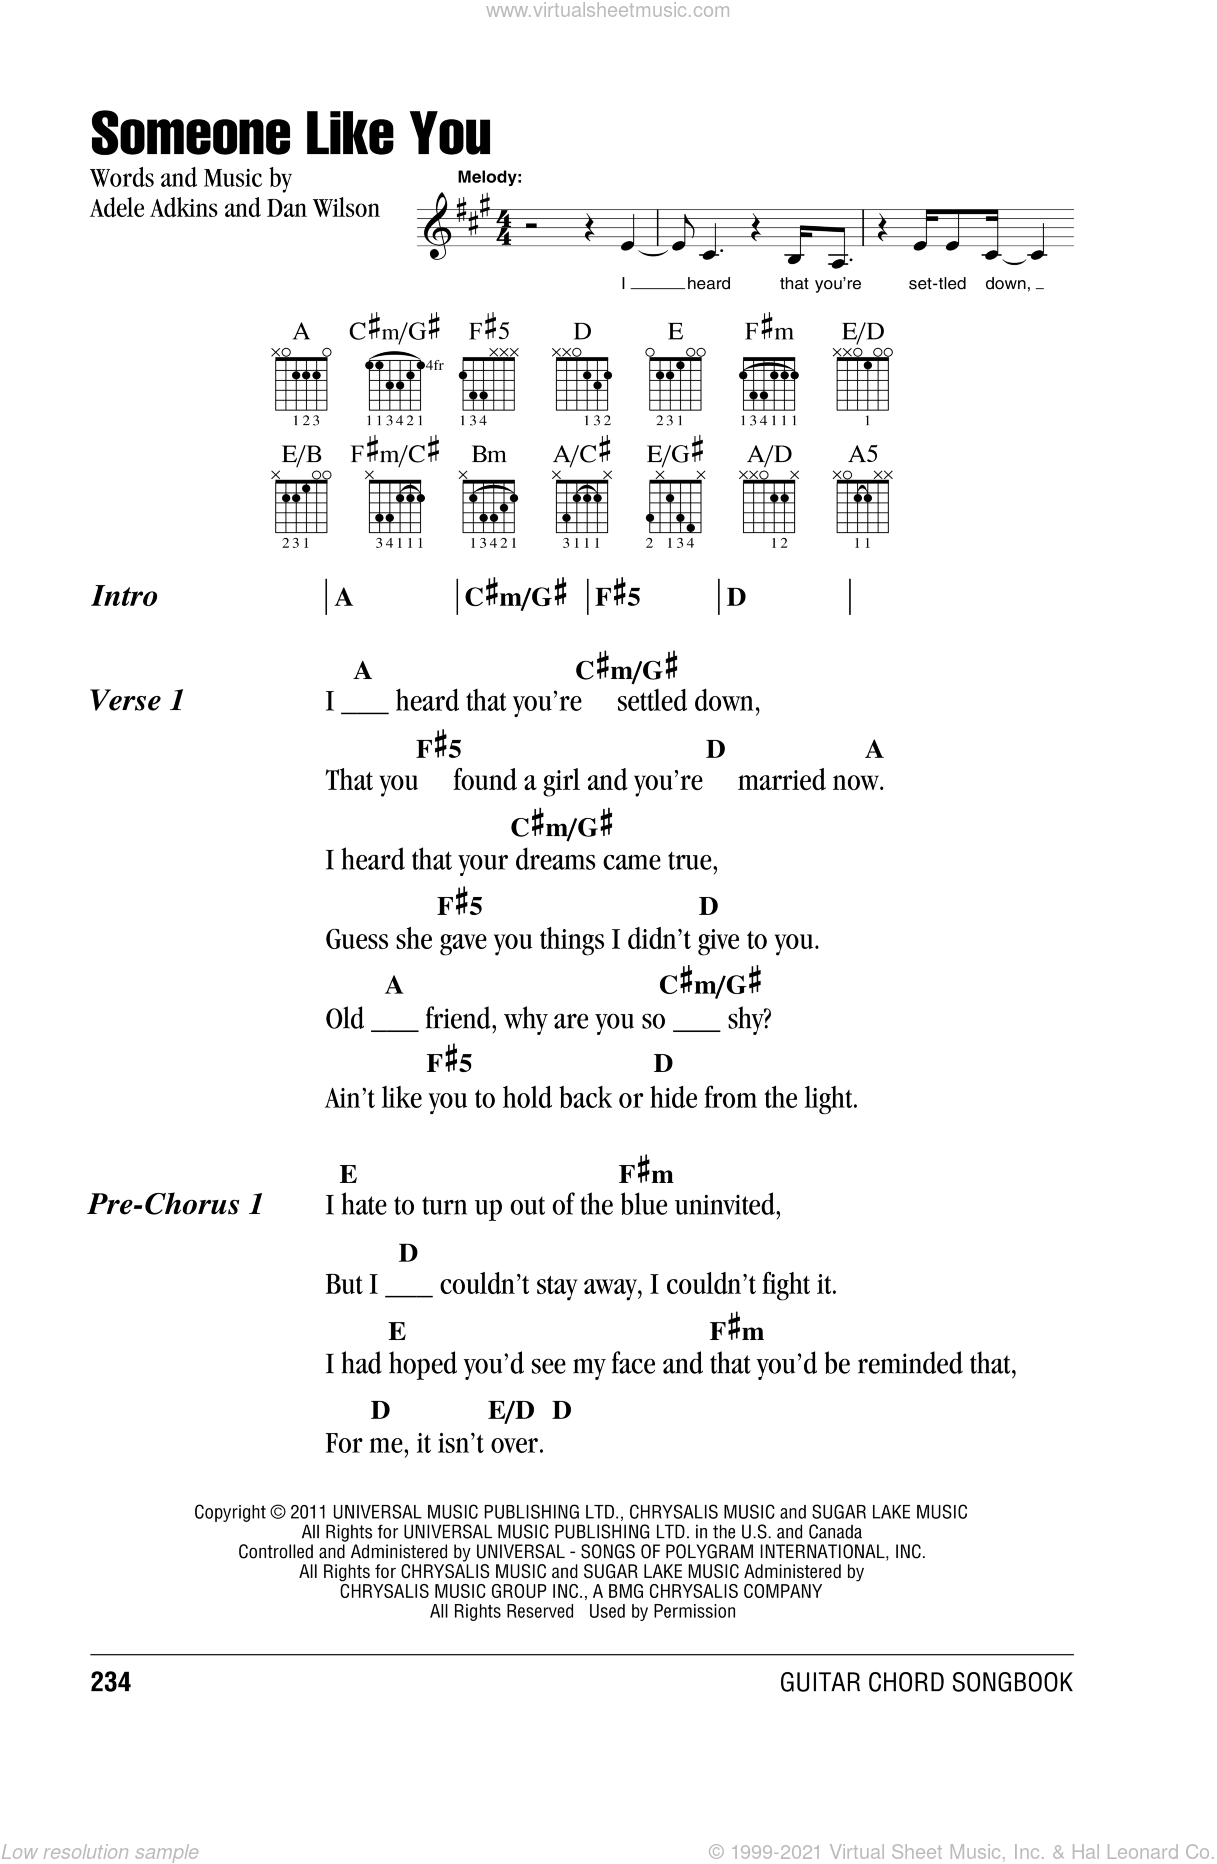 Someone Like You sheet music for guitar (chords) by Adele, Adele Adkins and Dan Wilson, intermediate skill level